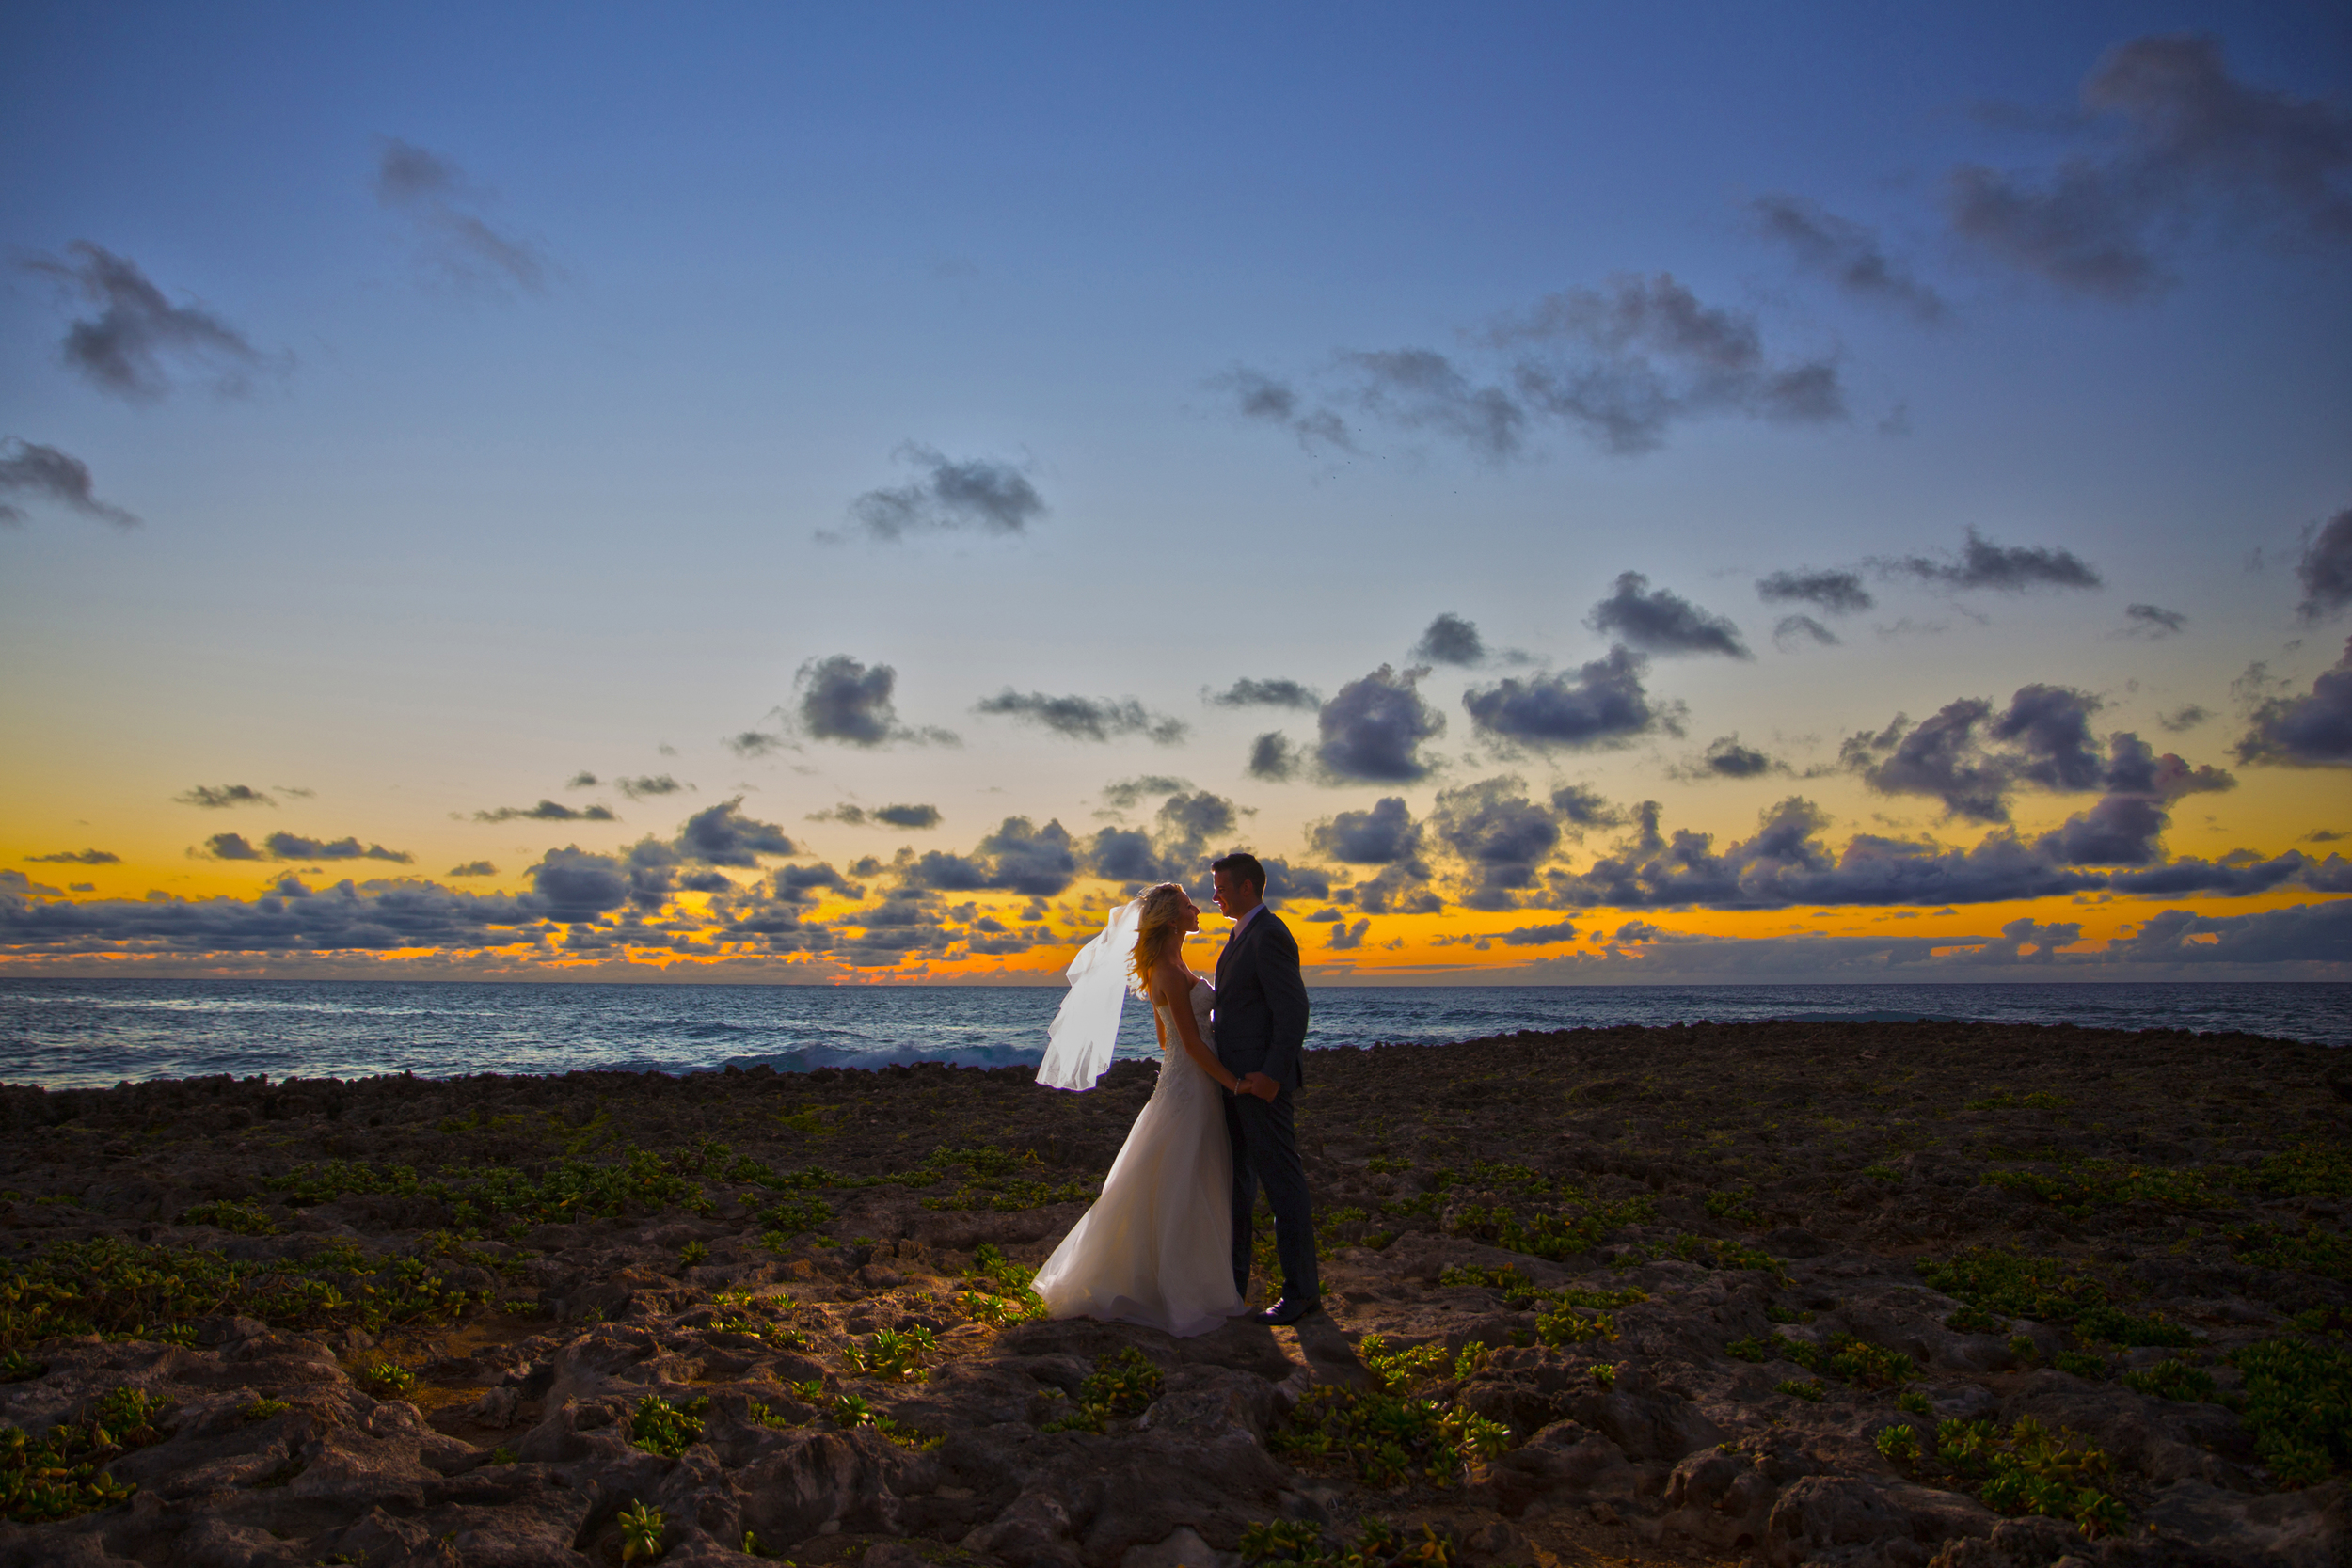 """""""Aloha  Bianca Photography ! We just wanted to say a huge thank you for all your help yesterday. You and Keiko were an absolute pleasure to deal with and made Nick and myself feel very comfortable. All our family commented afterwards on how professional and kind you both were. We appreciate the time you took to help us capture the perfect photos and we cannot wait to see them! Thank you so much again. We will never forget our day thanks to you! Mahalo! Georgia and Nick de Vos""""    """"Hi Bianca, Ummmm  WOW !!!!!! We just got the photos and are  BLOWN AWAY ! You and Keiko did such an amazing job, we are over the moon with the photos and are so excited to share these with our family and friends. Thank you for capturing our special day. Seeing these photos makes us miss Hawaii so much!! Thank you, thank you, thank you!!! Lots of love Georgia & Nick de Vos""""   Location:  Turtle Bay Resort"""